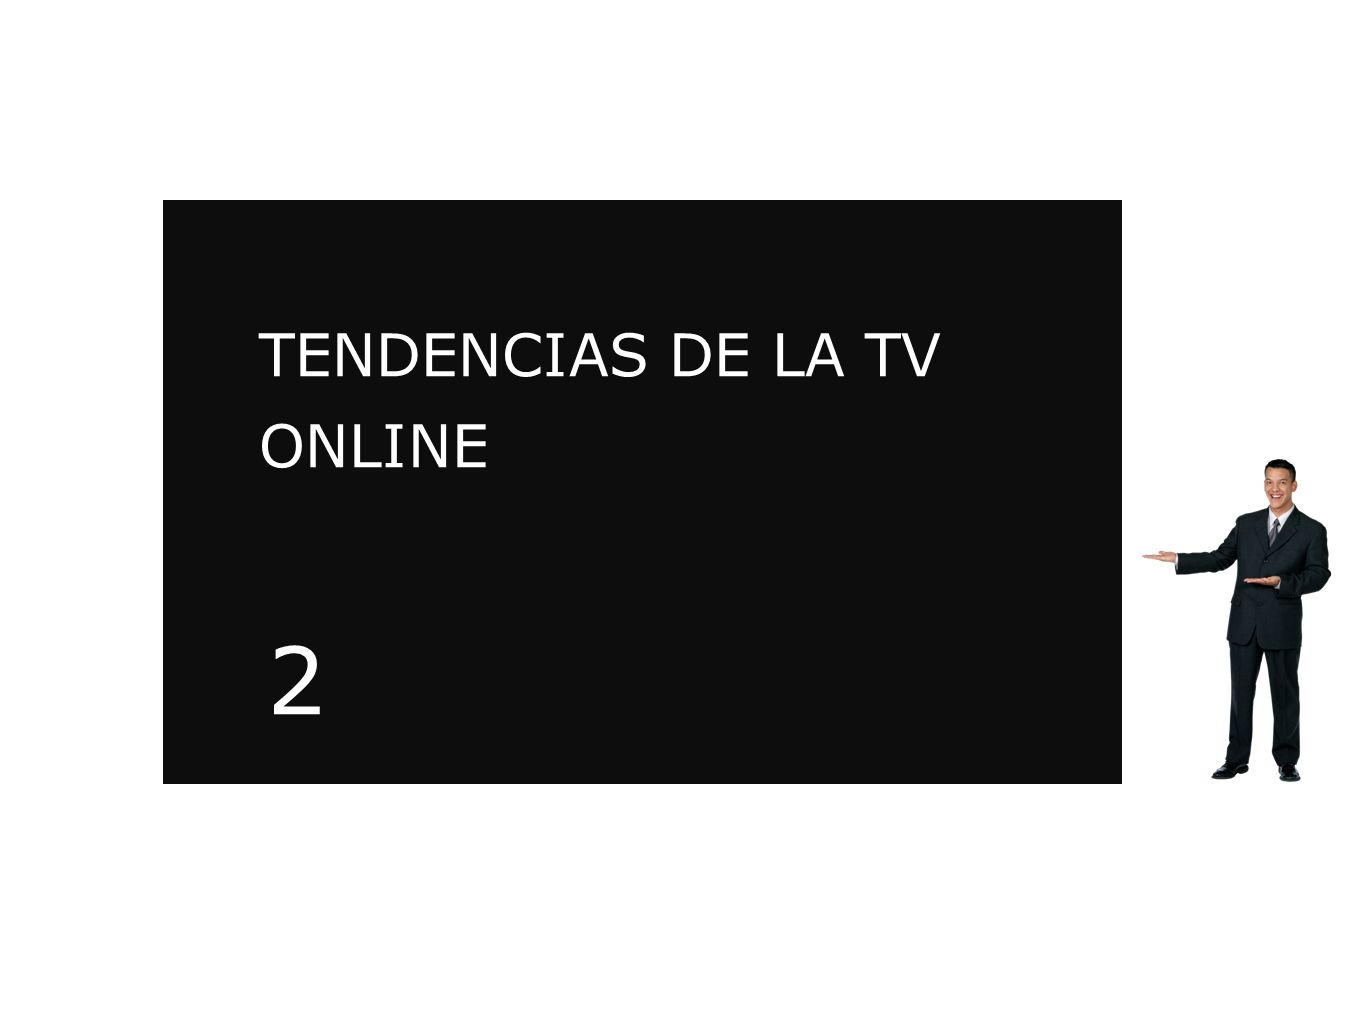 TENDENCIAS DE LA TV ONLINE